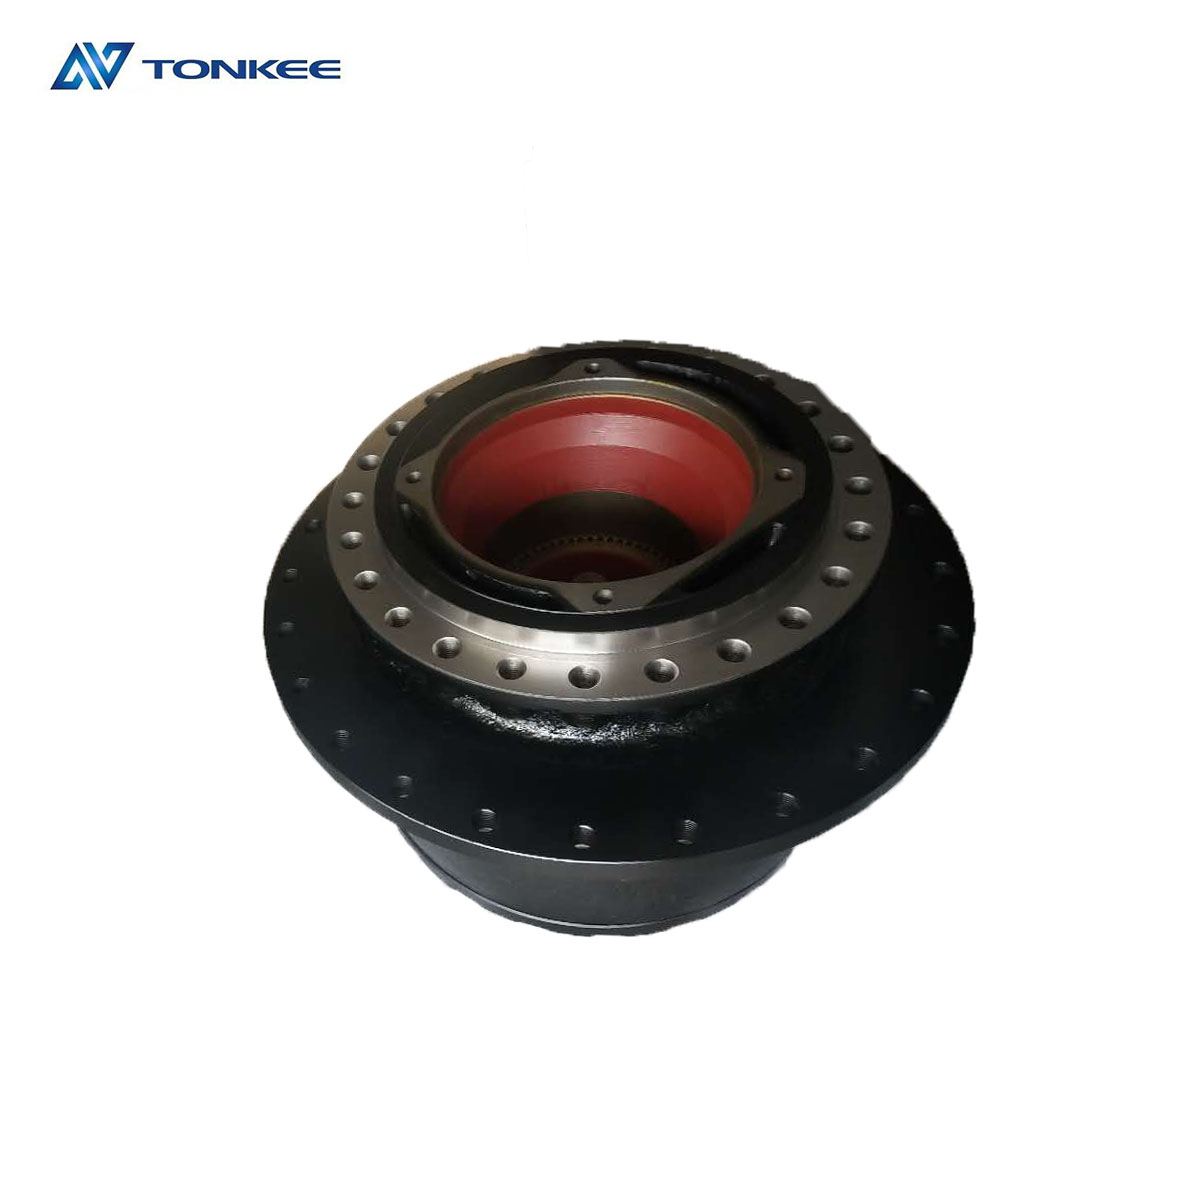 9254461 9254462 4641493 ZX650LC-3 ZX670LC-5B ZX670LC-5G ZX670LCH-3 ZX670LCH-5B ZX670LCH-5G ZX670LCR-3 ZX670LCR-5G  travel transmission gearbox  travel device for HITACHI excavator